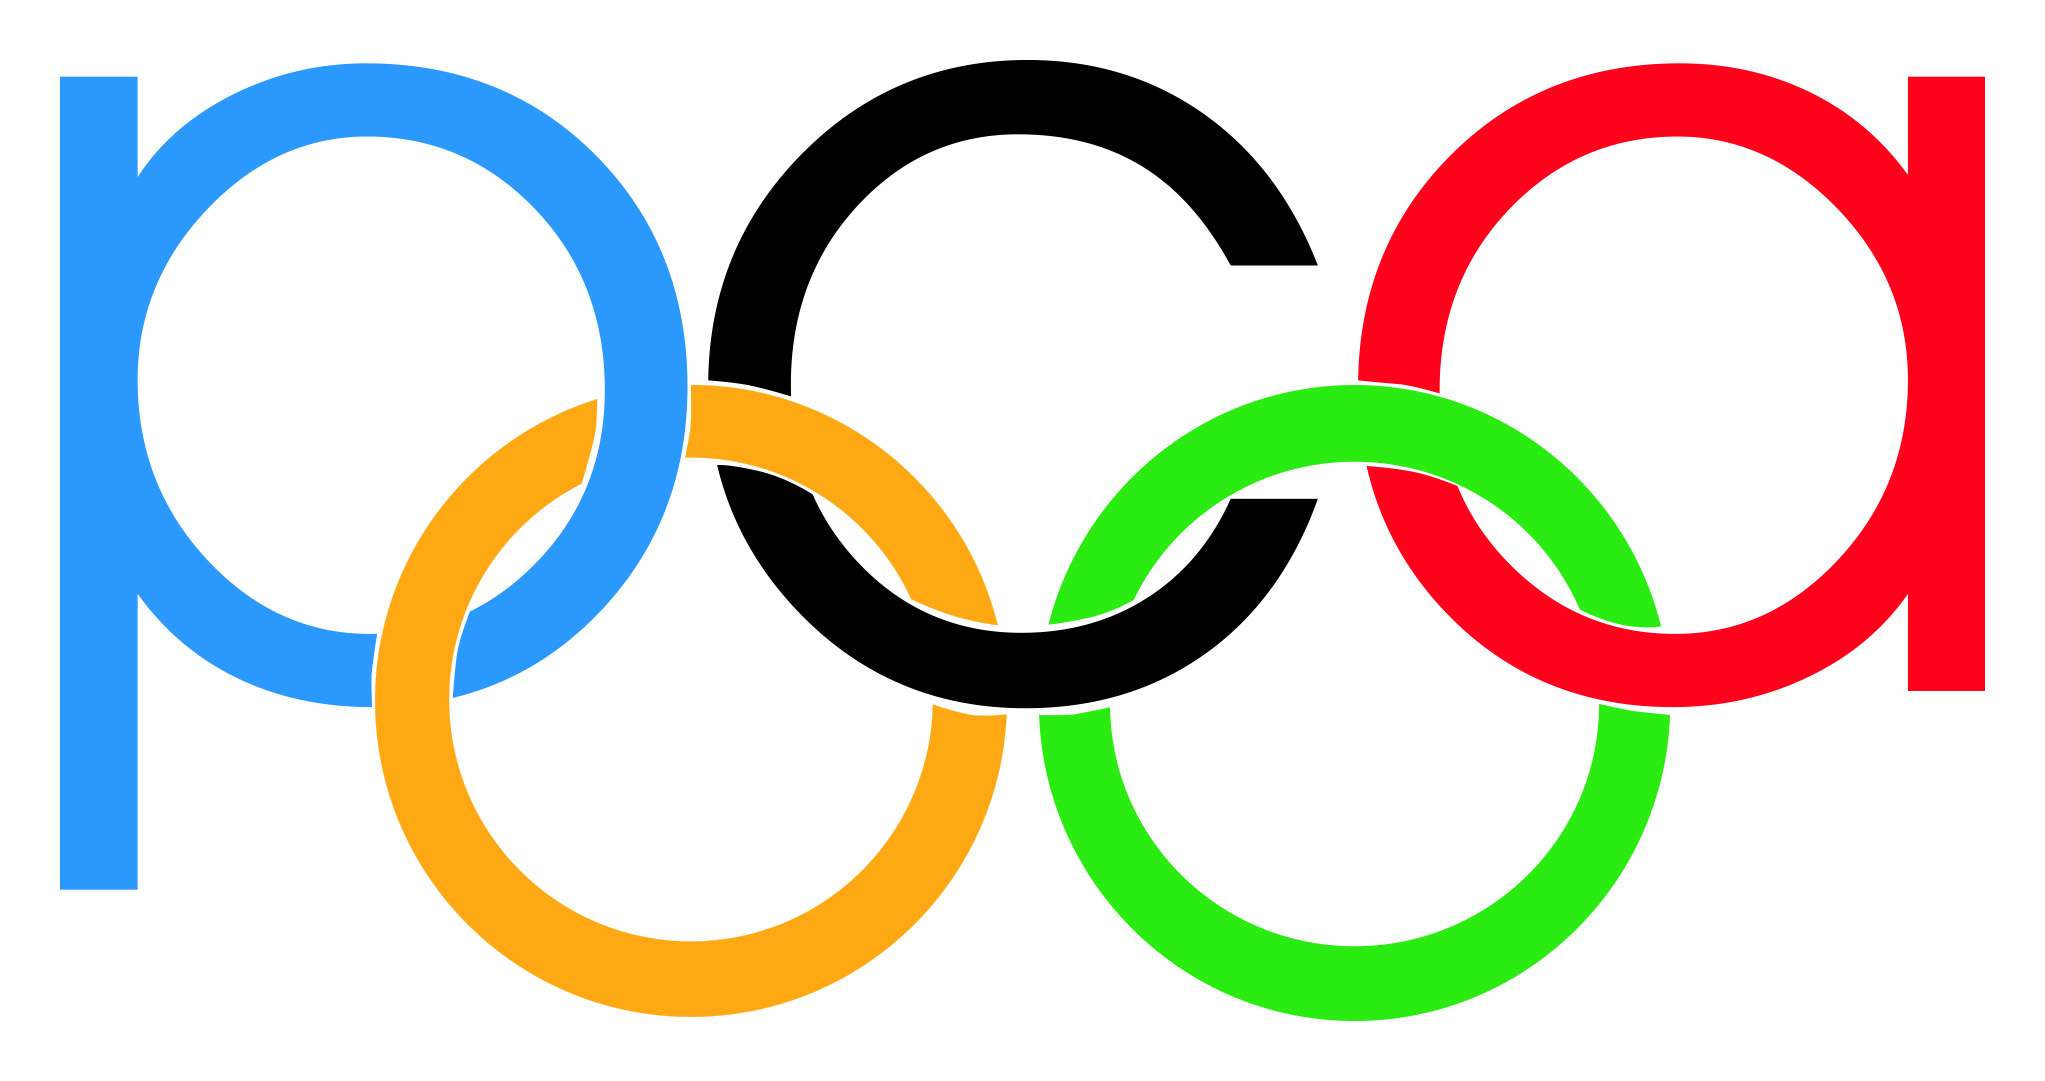 Olympic Rings Image   Clipart Best